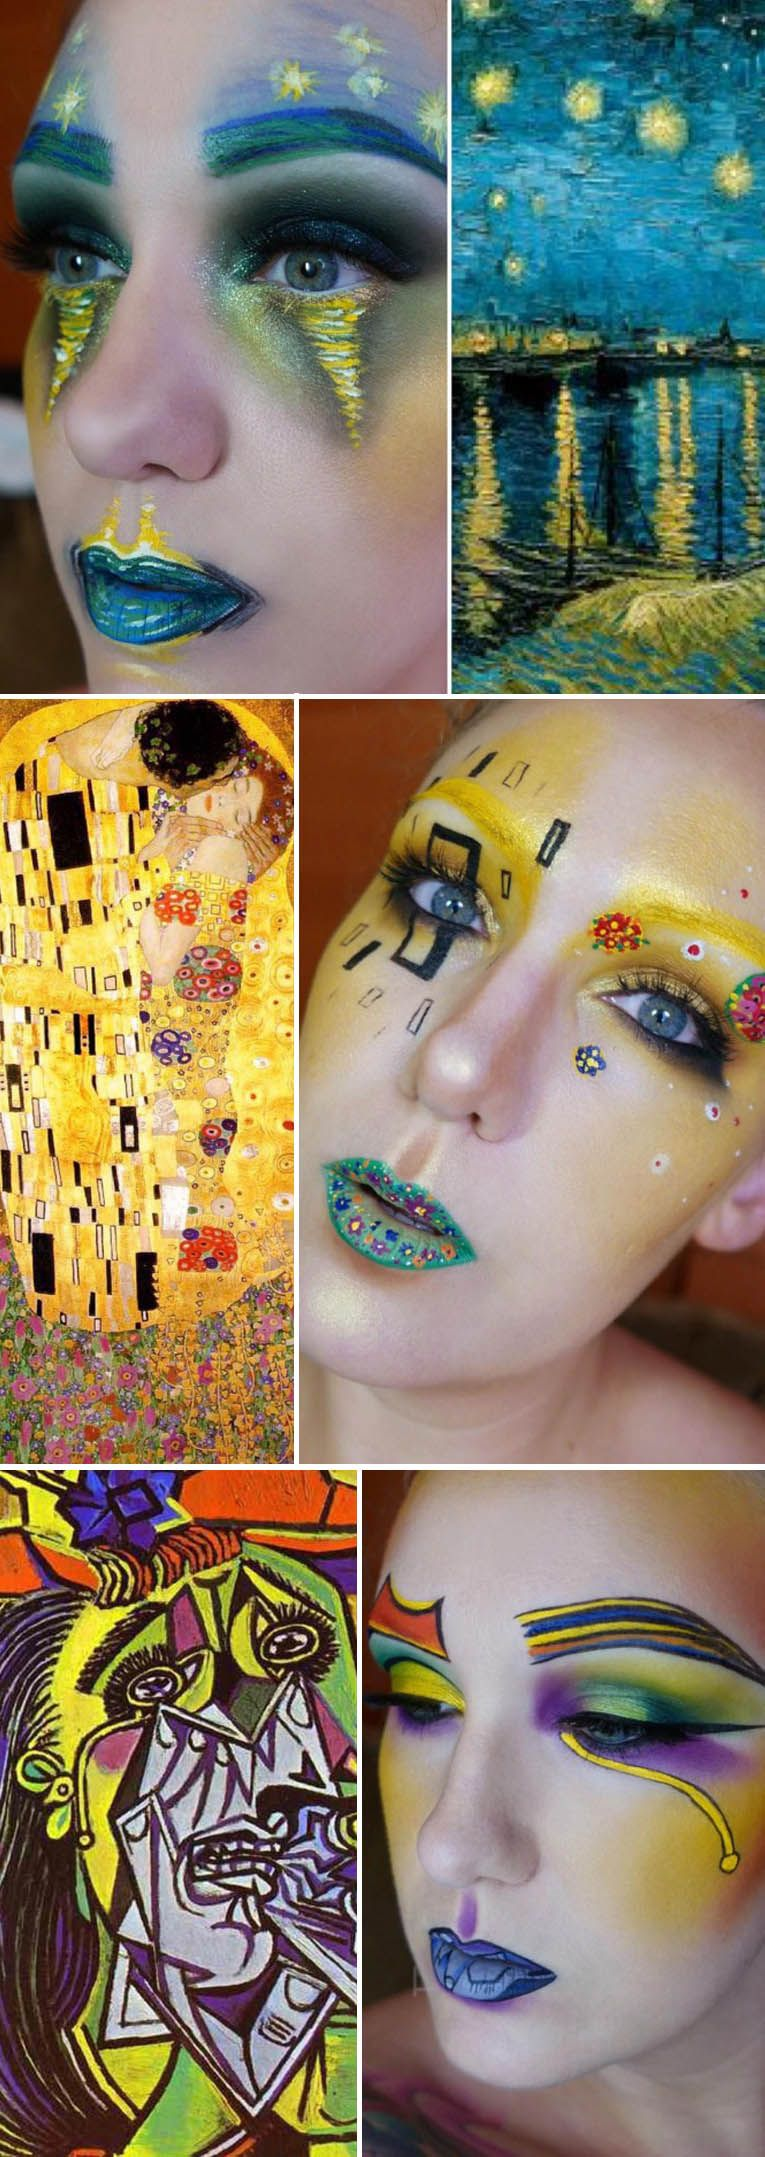 Makeup artist transforms herself into famous paintings, and we can't stop staring